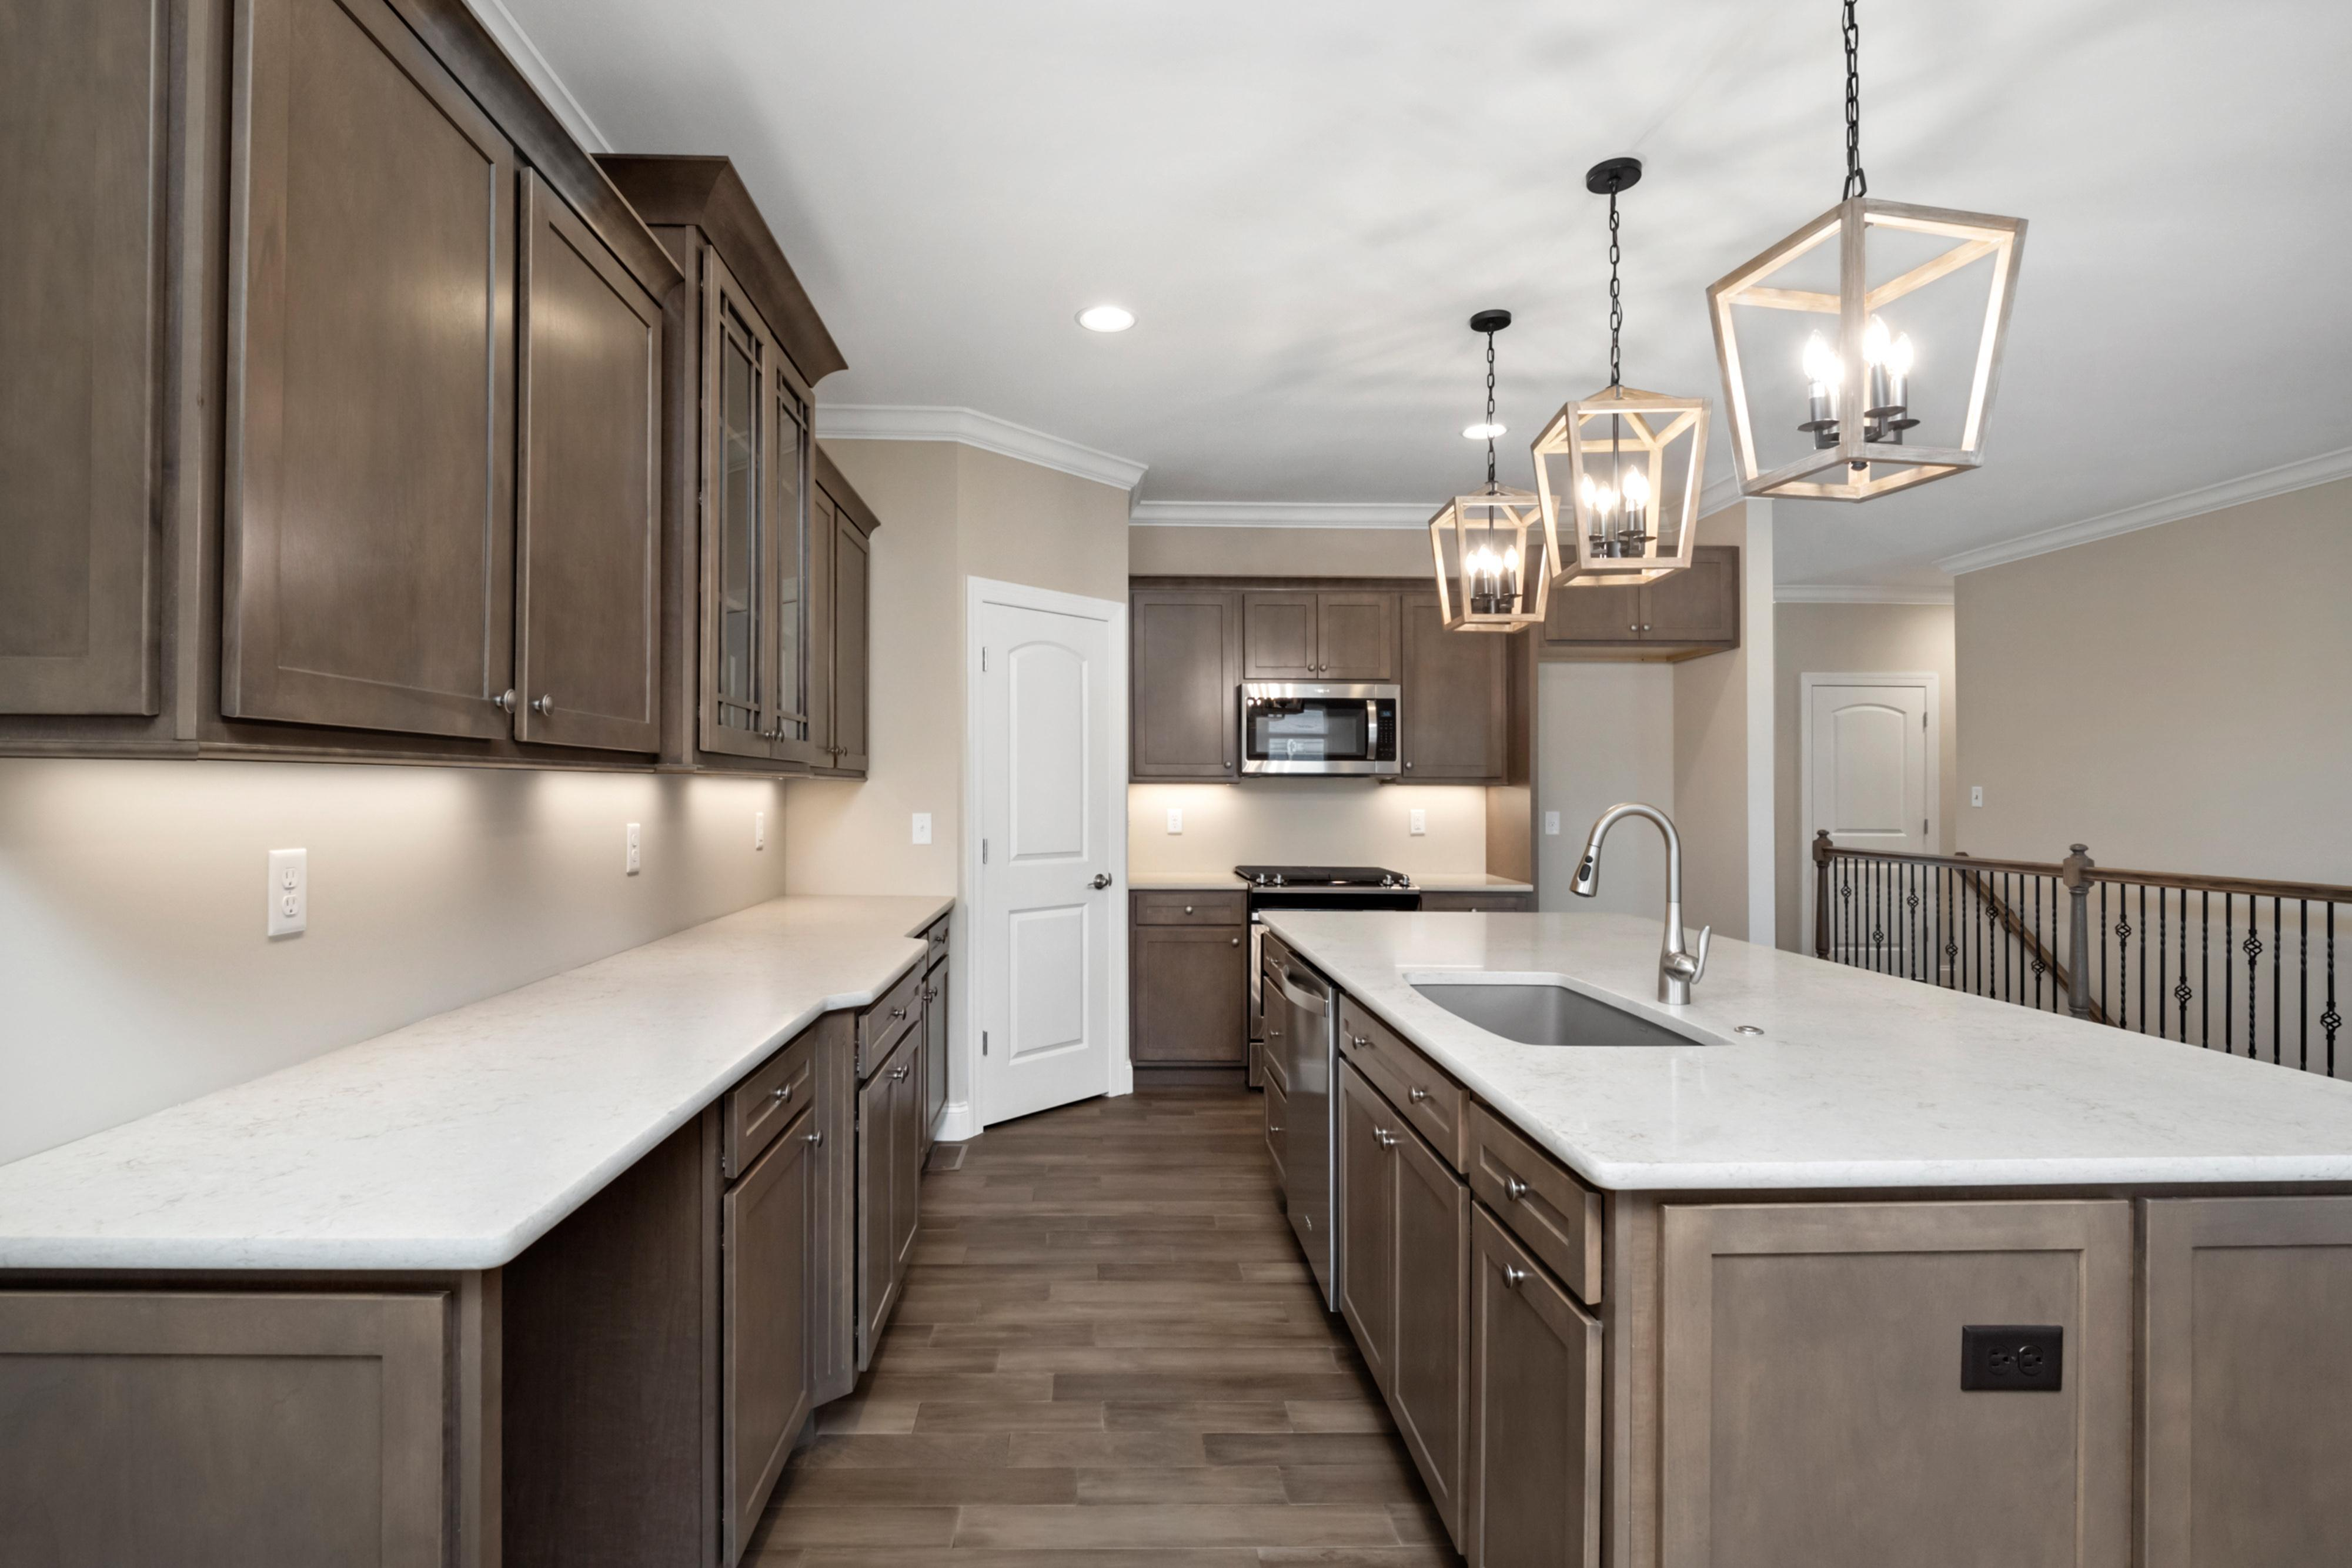 Kitchen featured in The Grand Columbia By The Kemp Homes Company  in St. Louis, MO